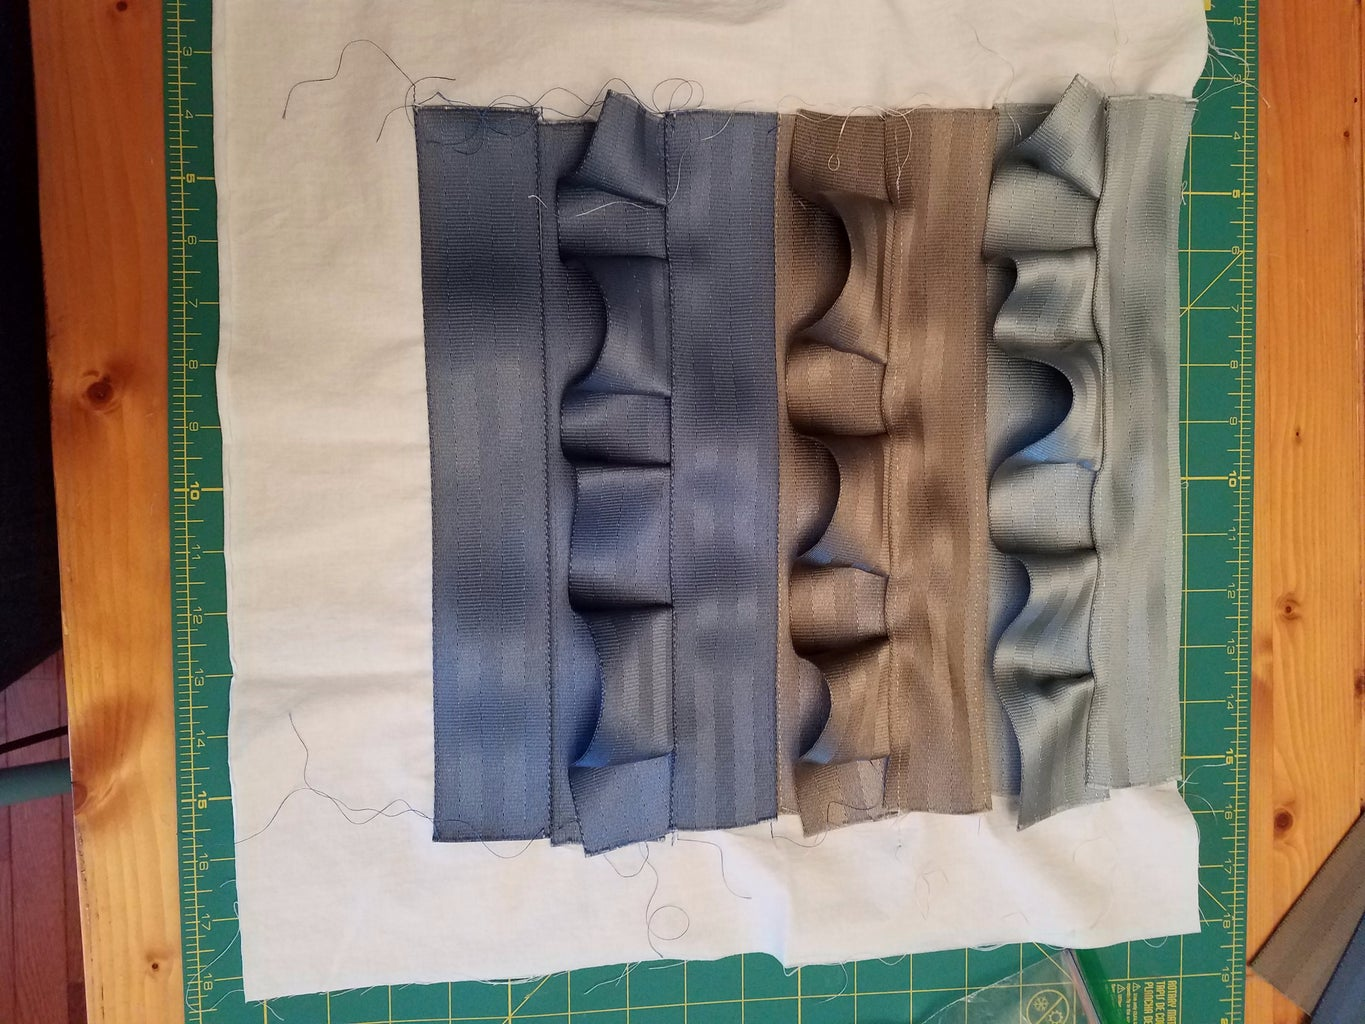 Sew Front of Bag